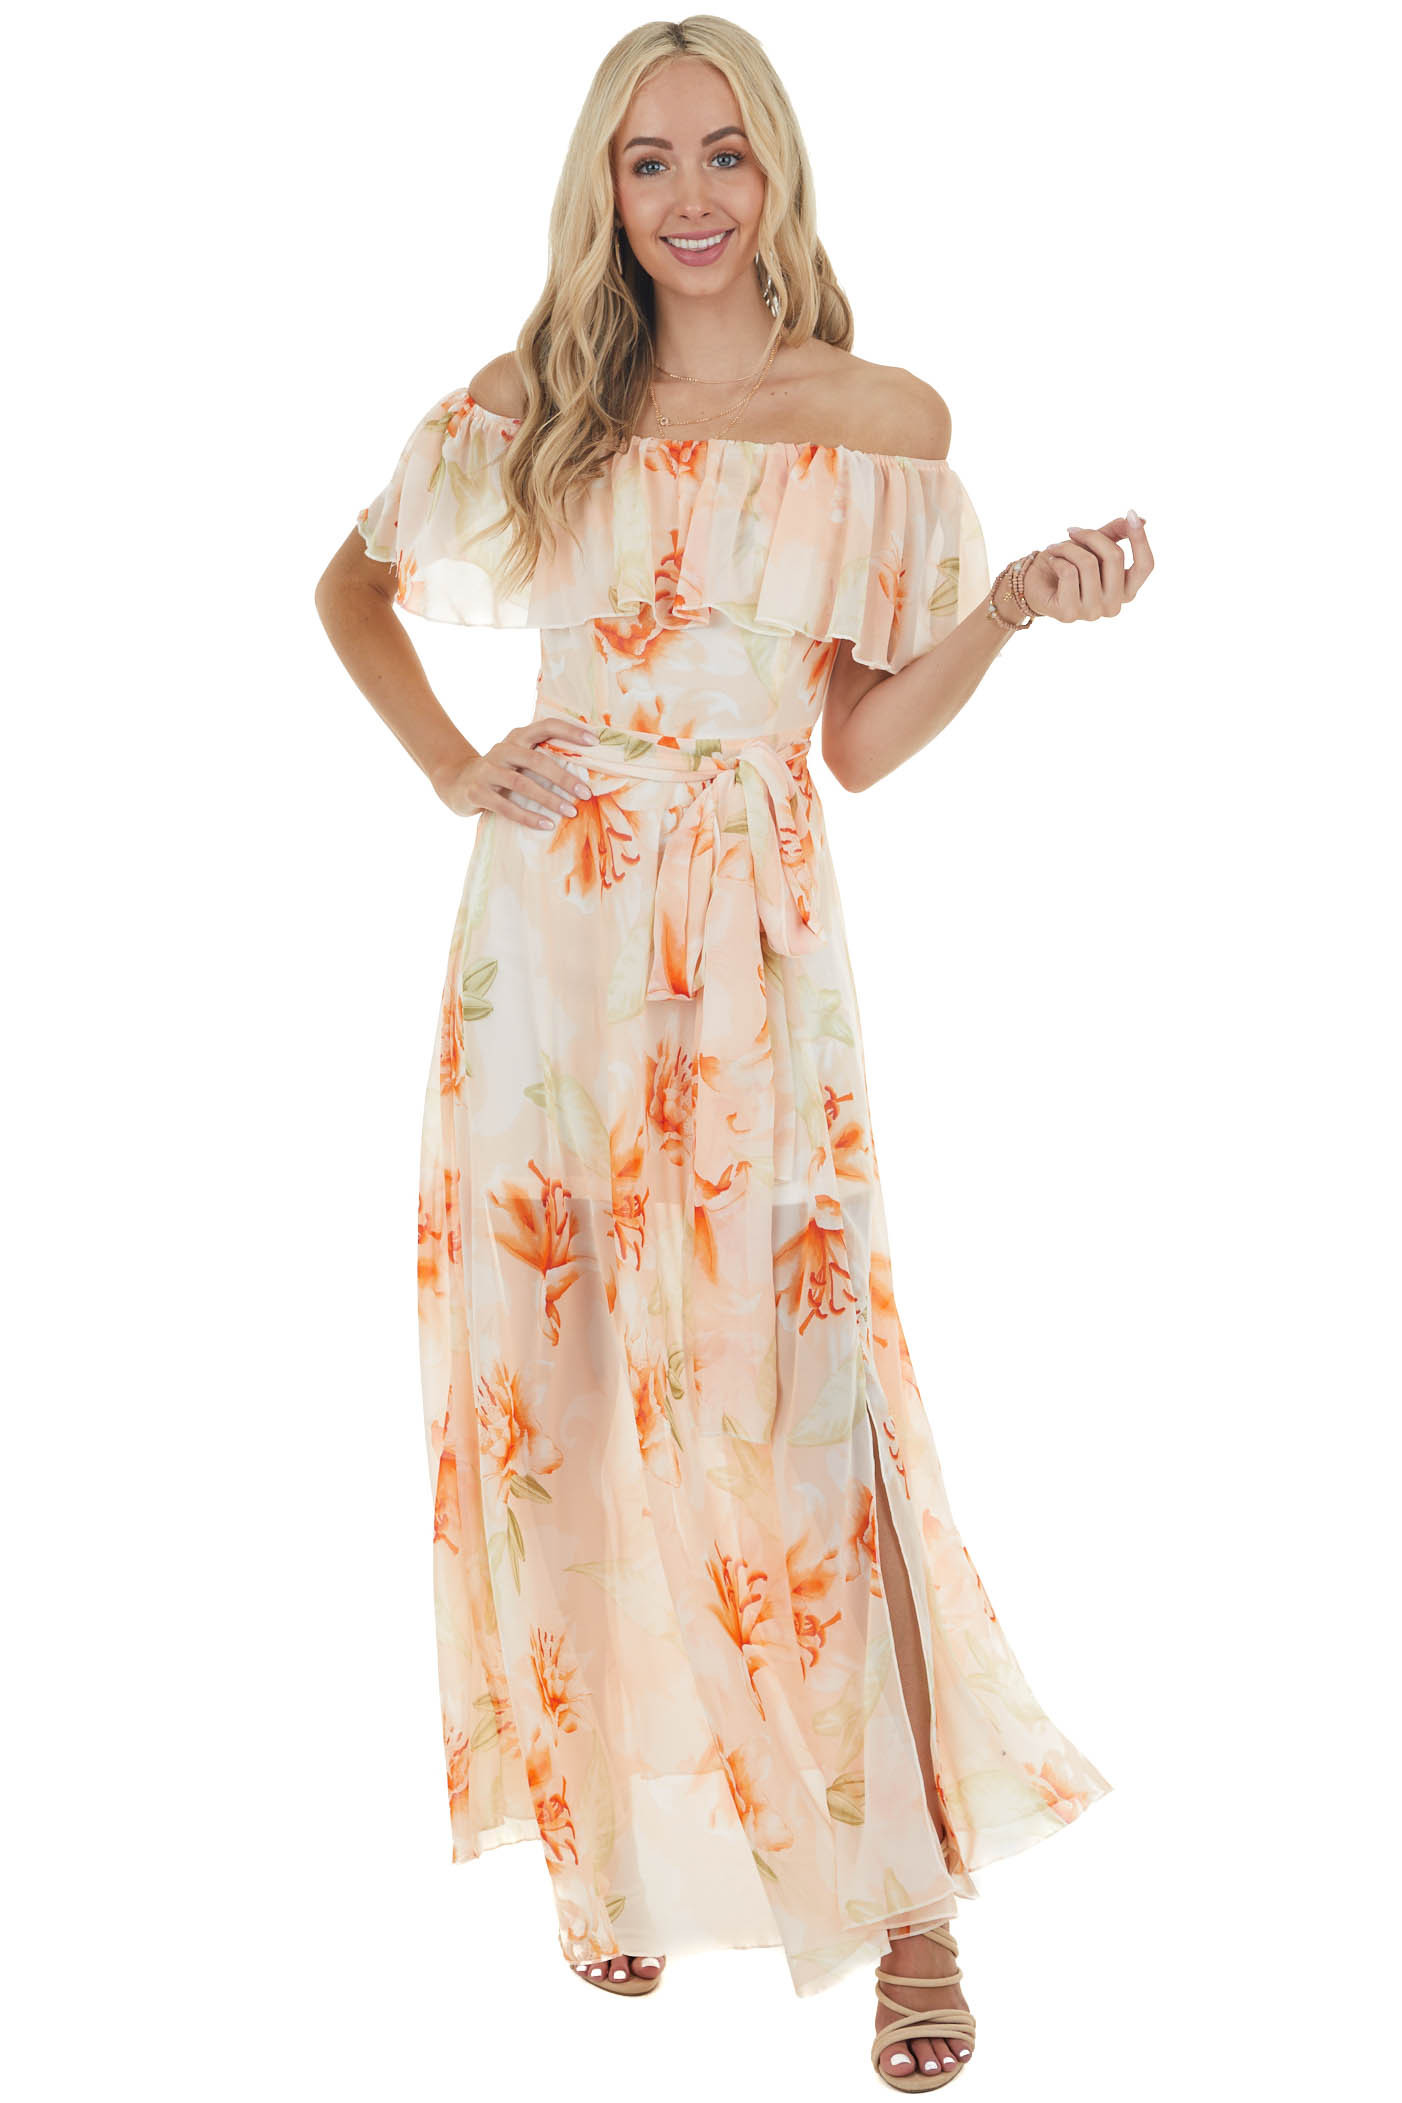 Peach Floral Print Off the Shoulder Woven Dress with Slit